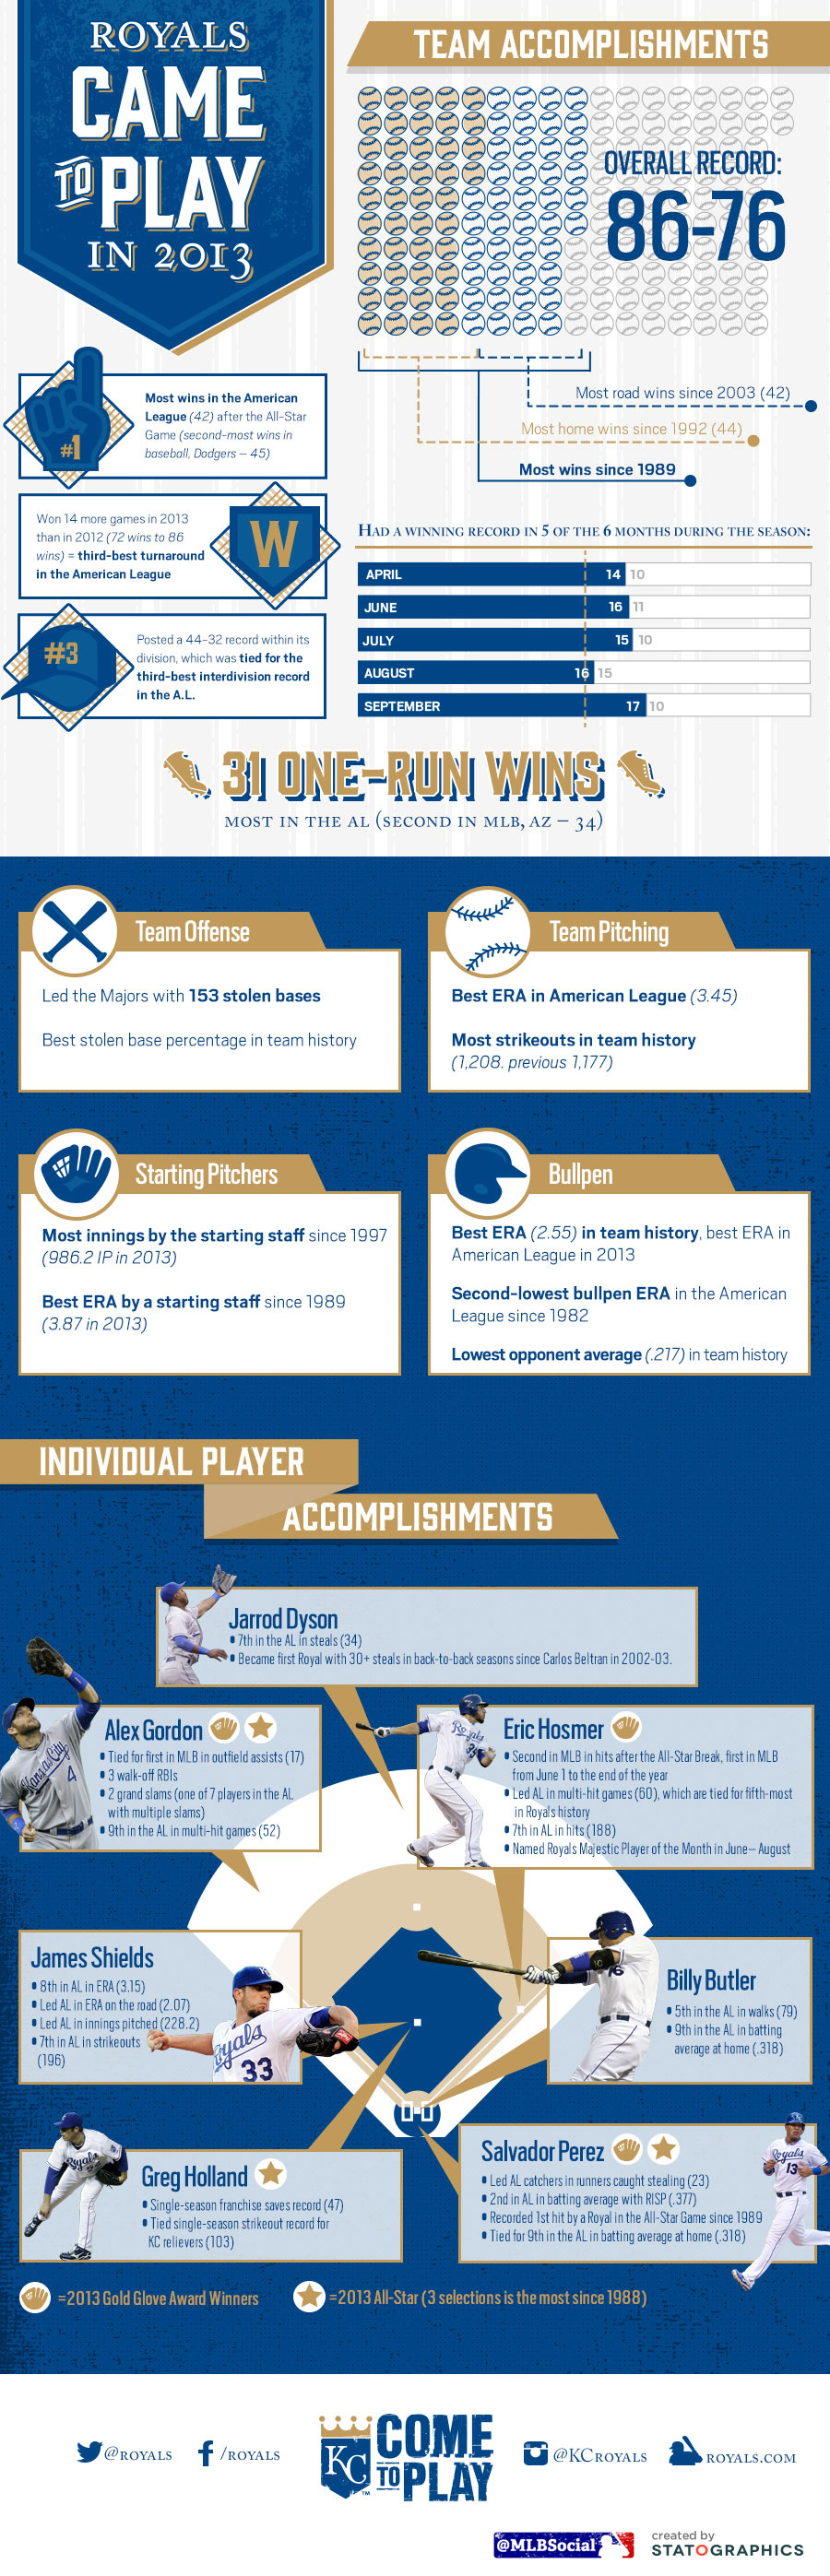 [INFOGRAPHIC] The Kansas City Royals came to play in 2013.